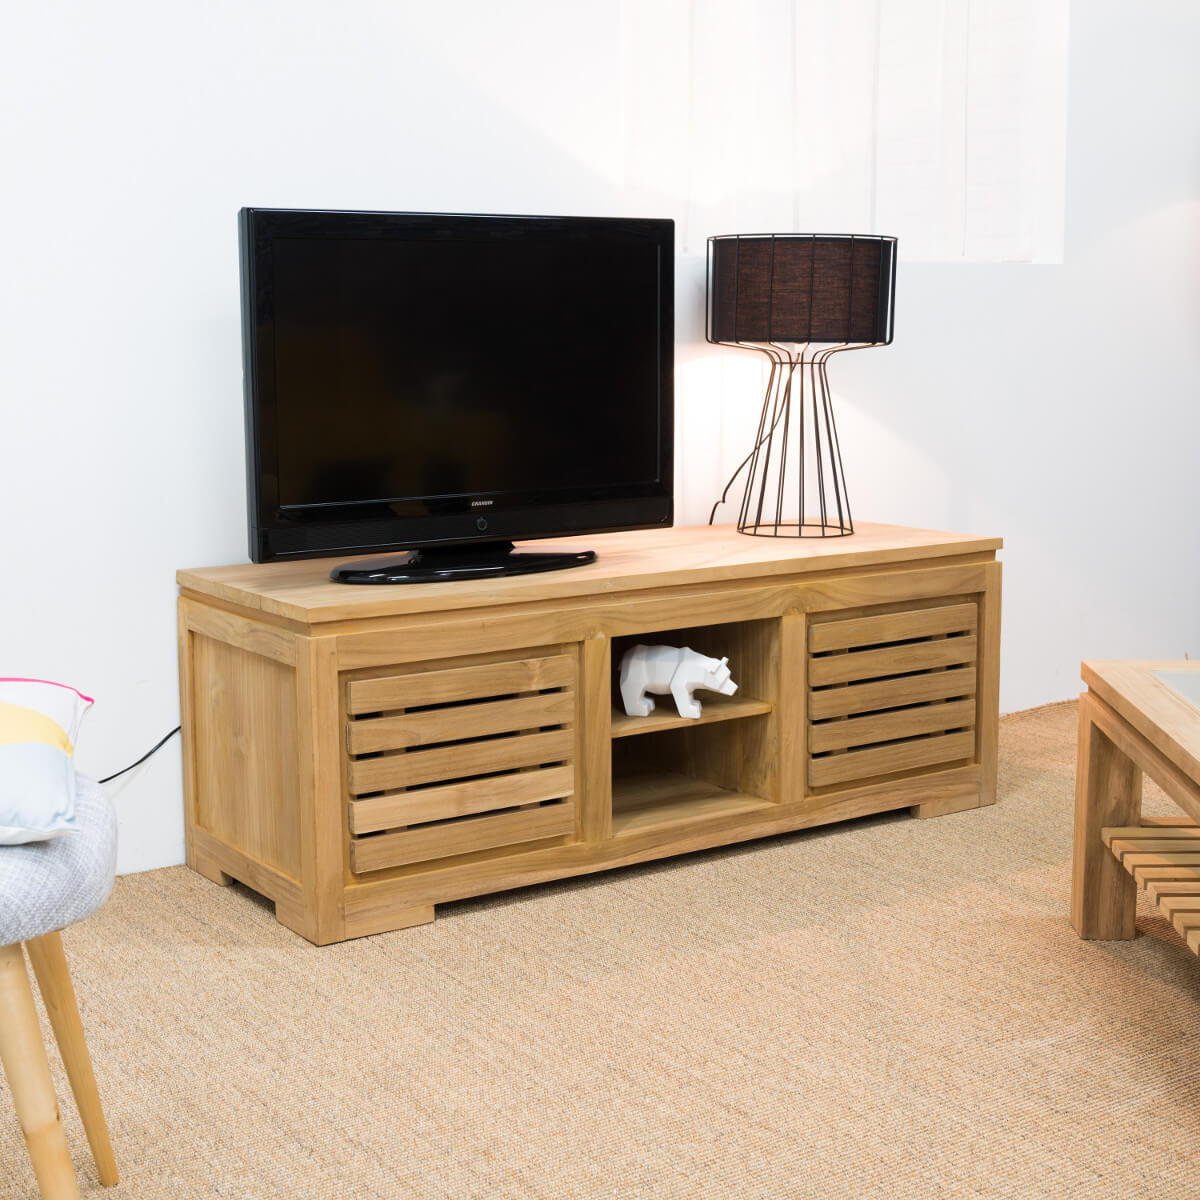 Meuble tv teck meuble tv bois naturel rectangle zen for Meuble tv 60 cm longueur